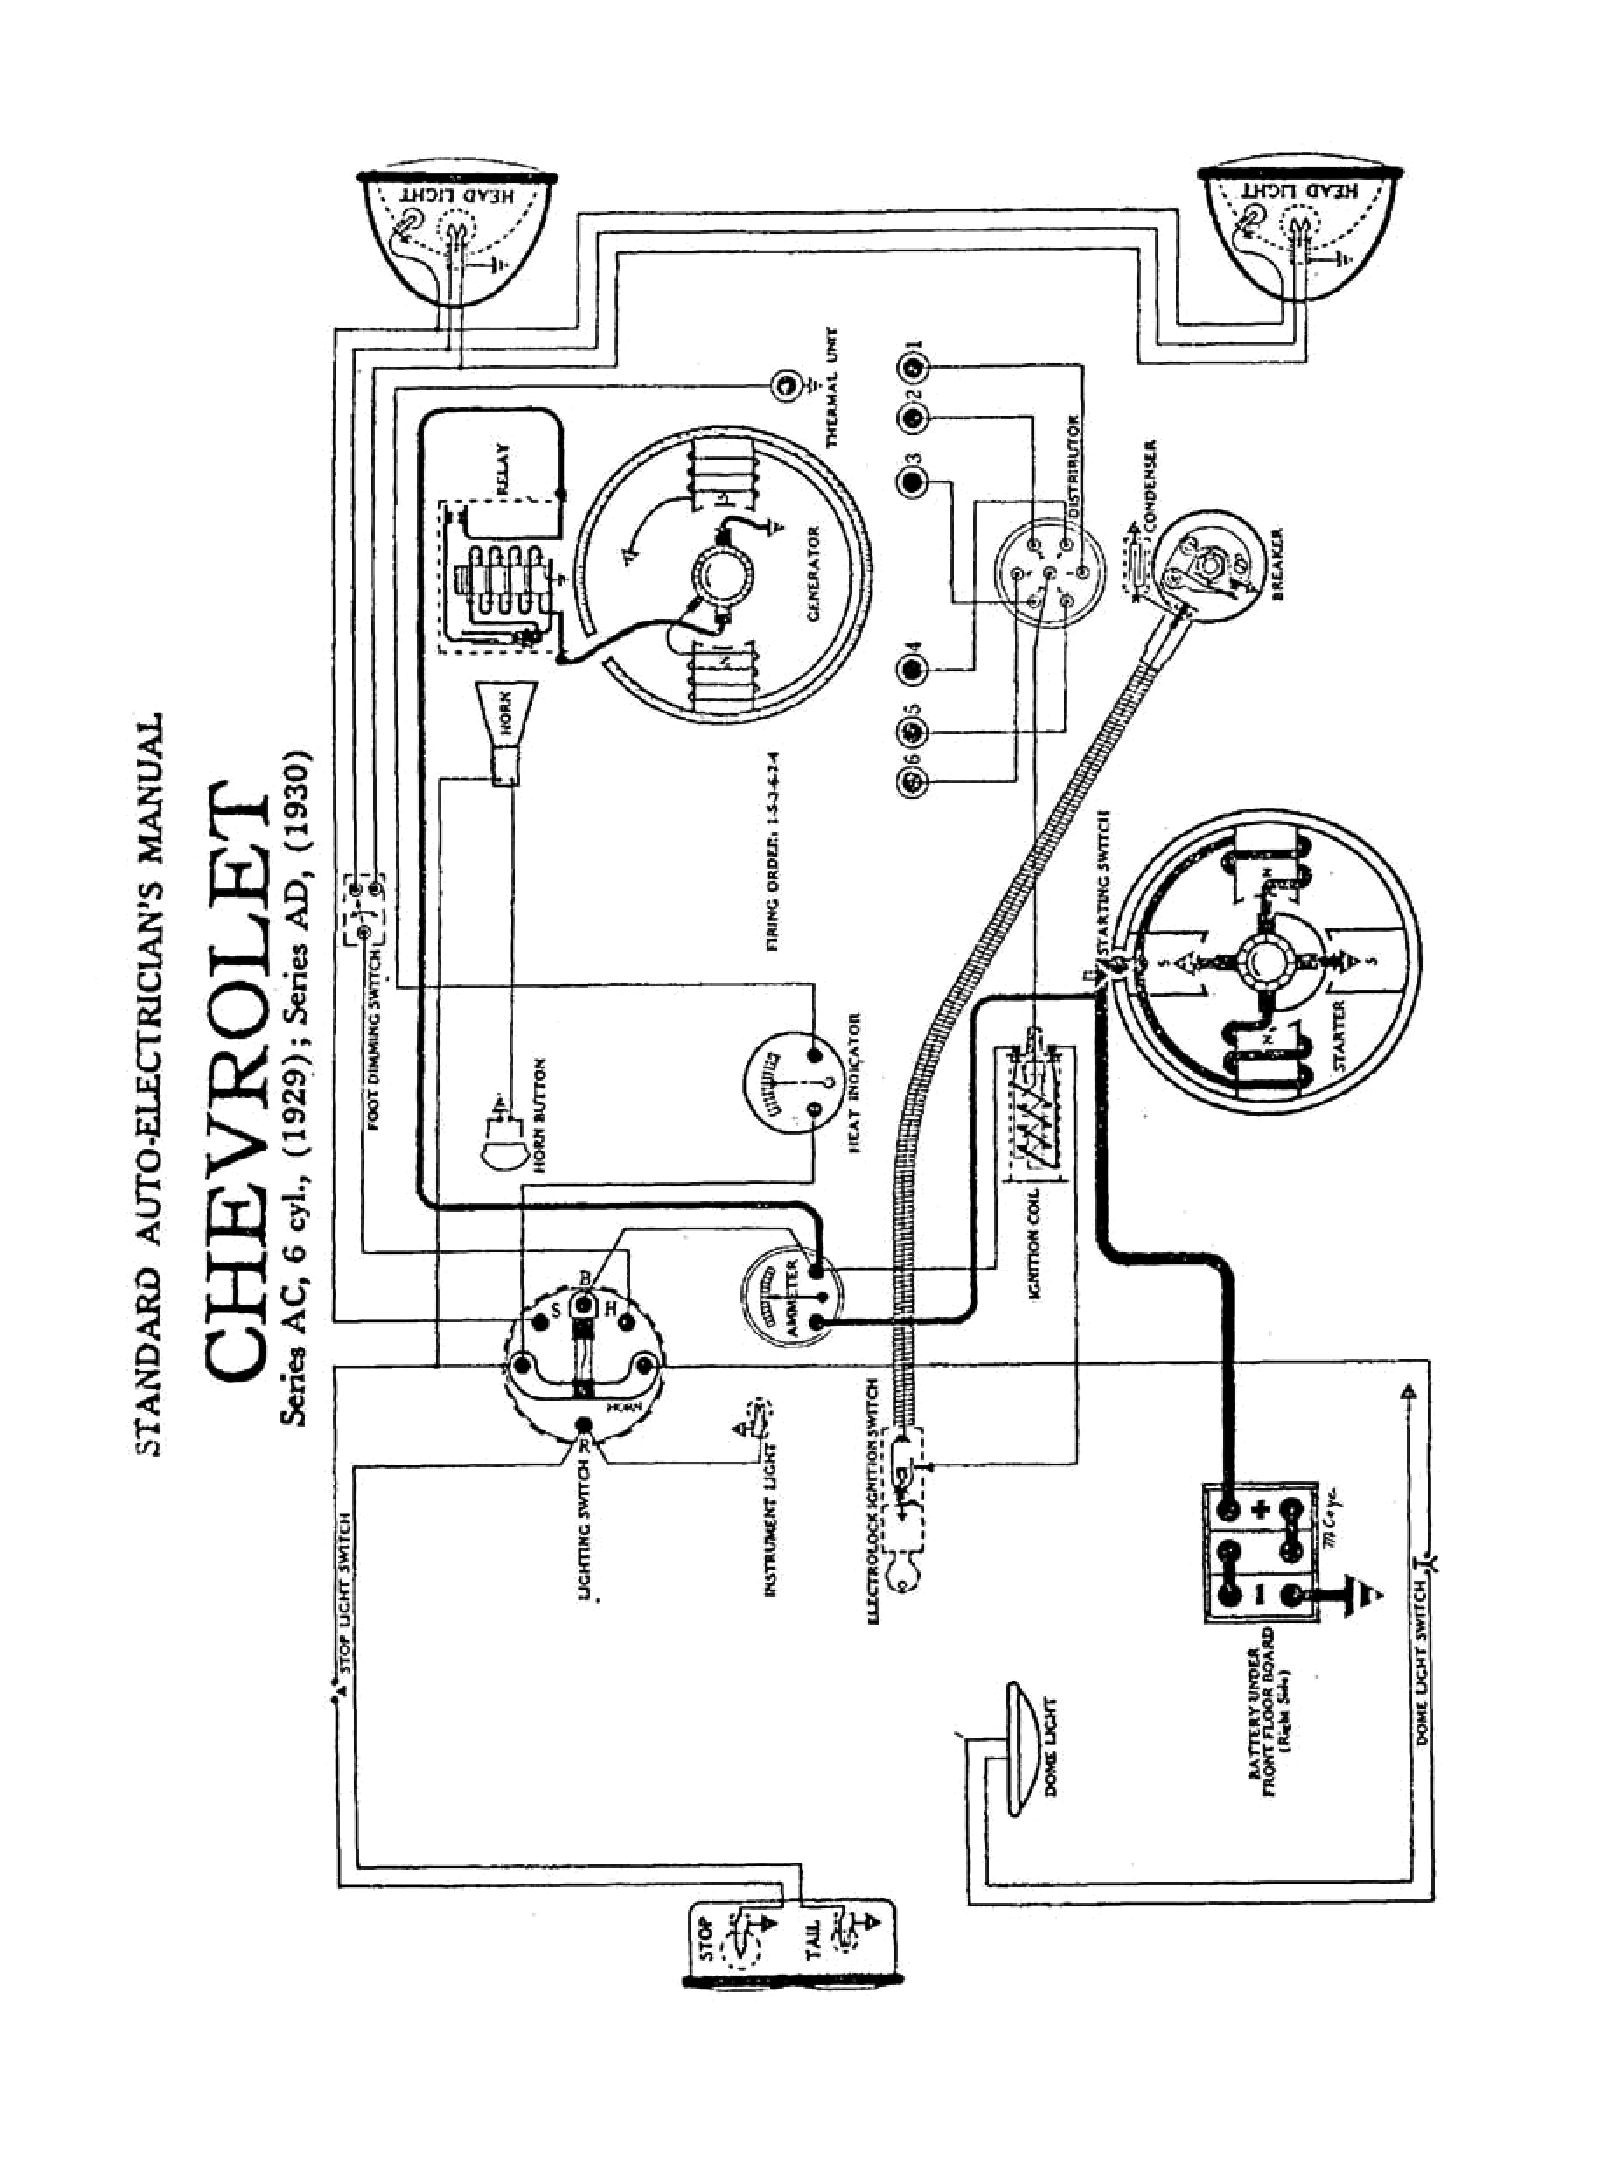 model t wiring diagram new chevy wiring diagrams of model t wiring diagram wiring diagram for piaa lights wiring diagram online